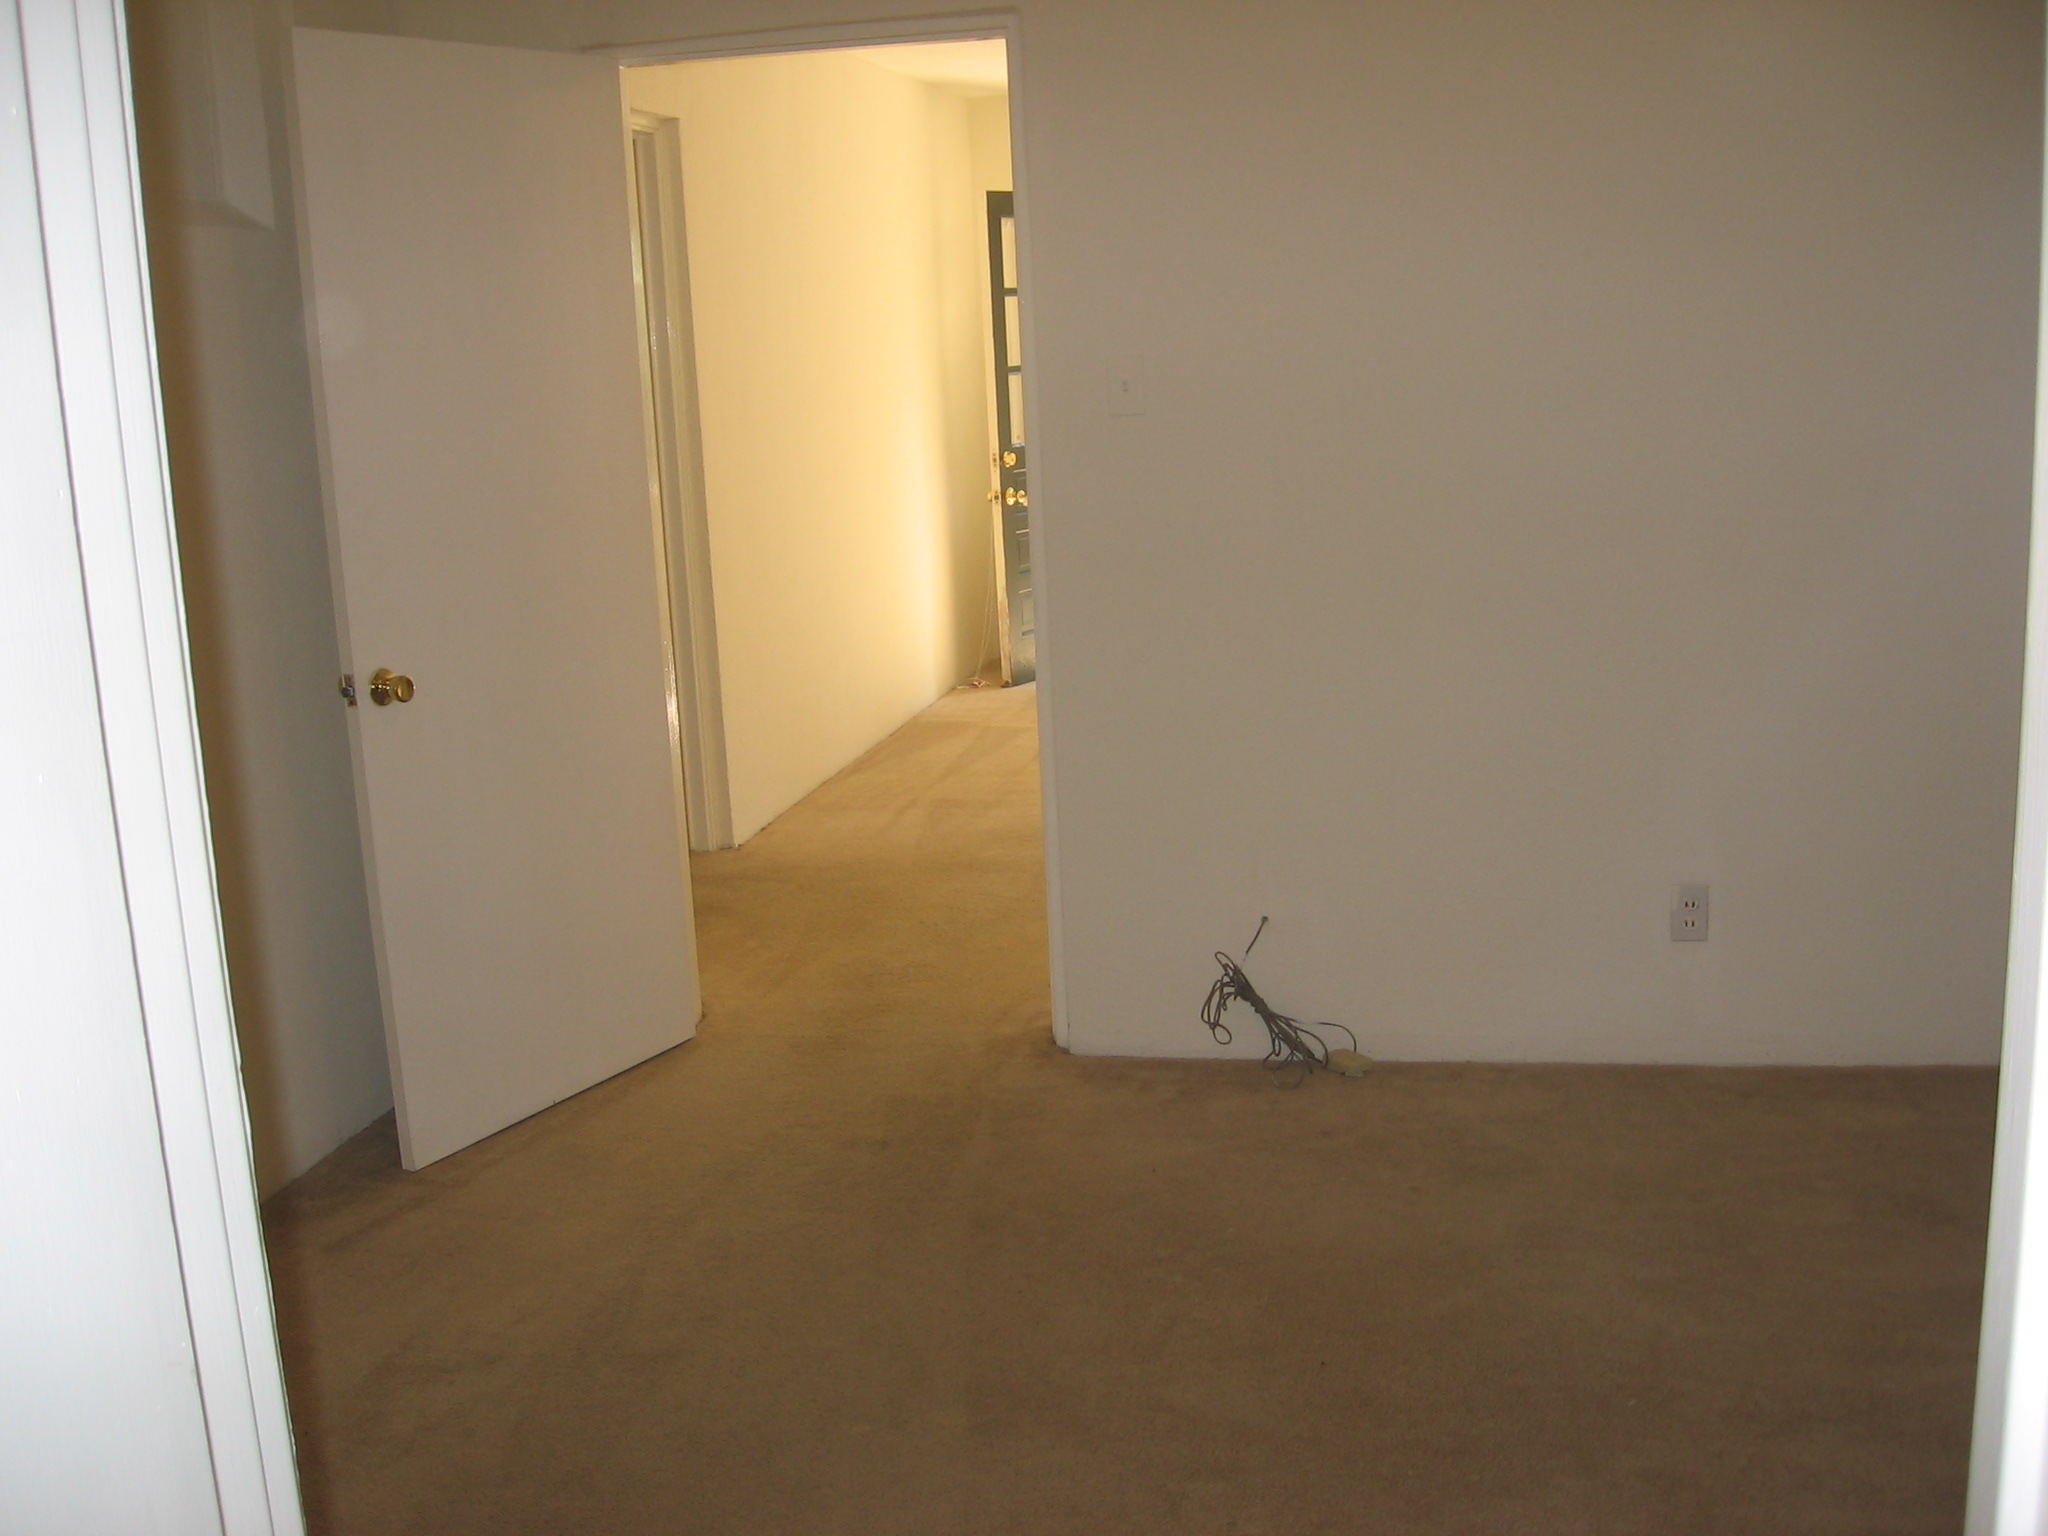 Additional study/dining/bedroom - unrenovated